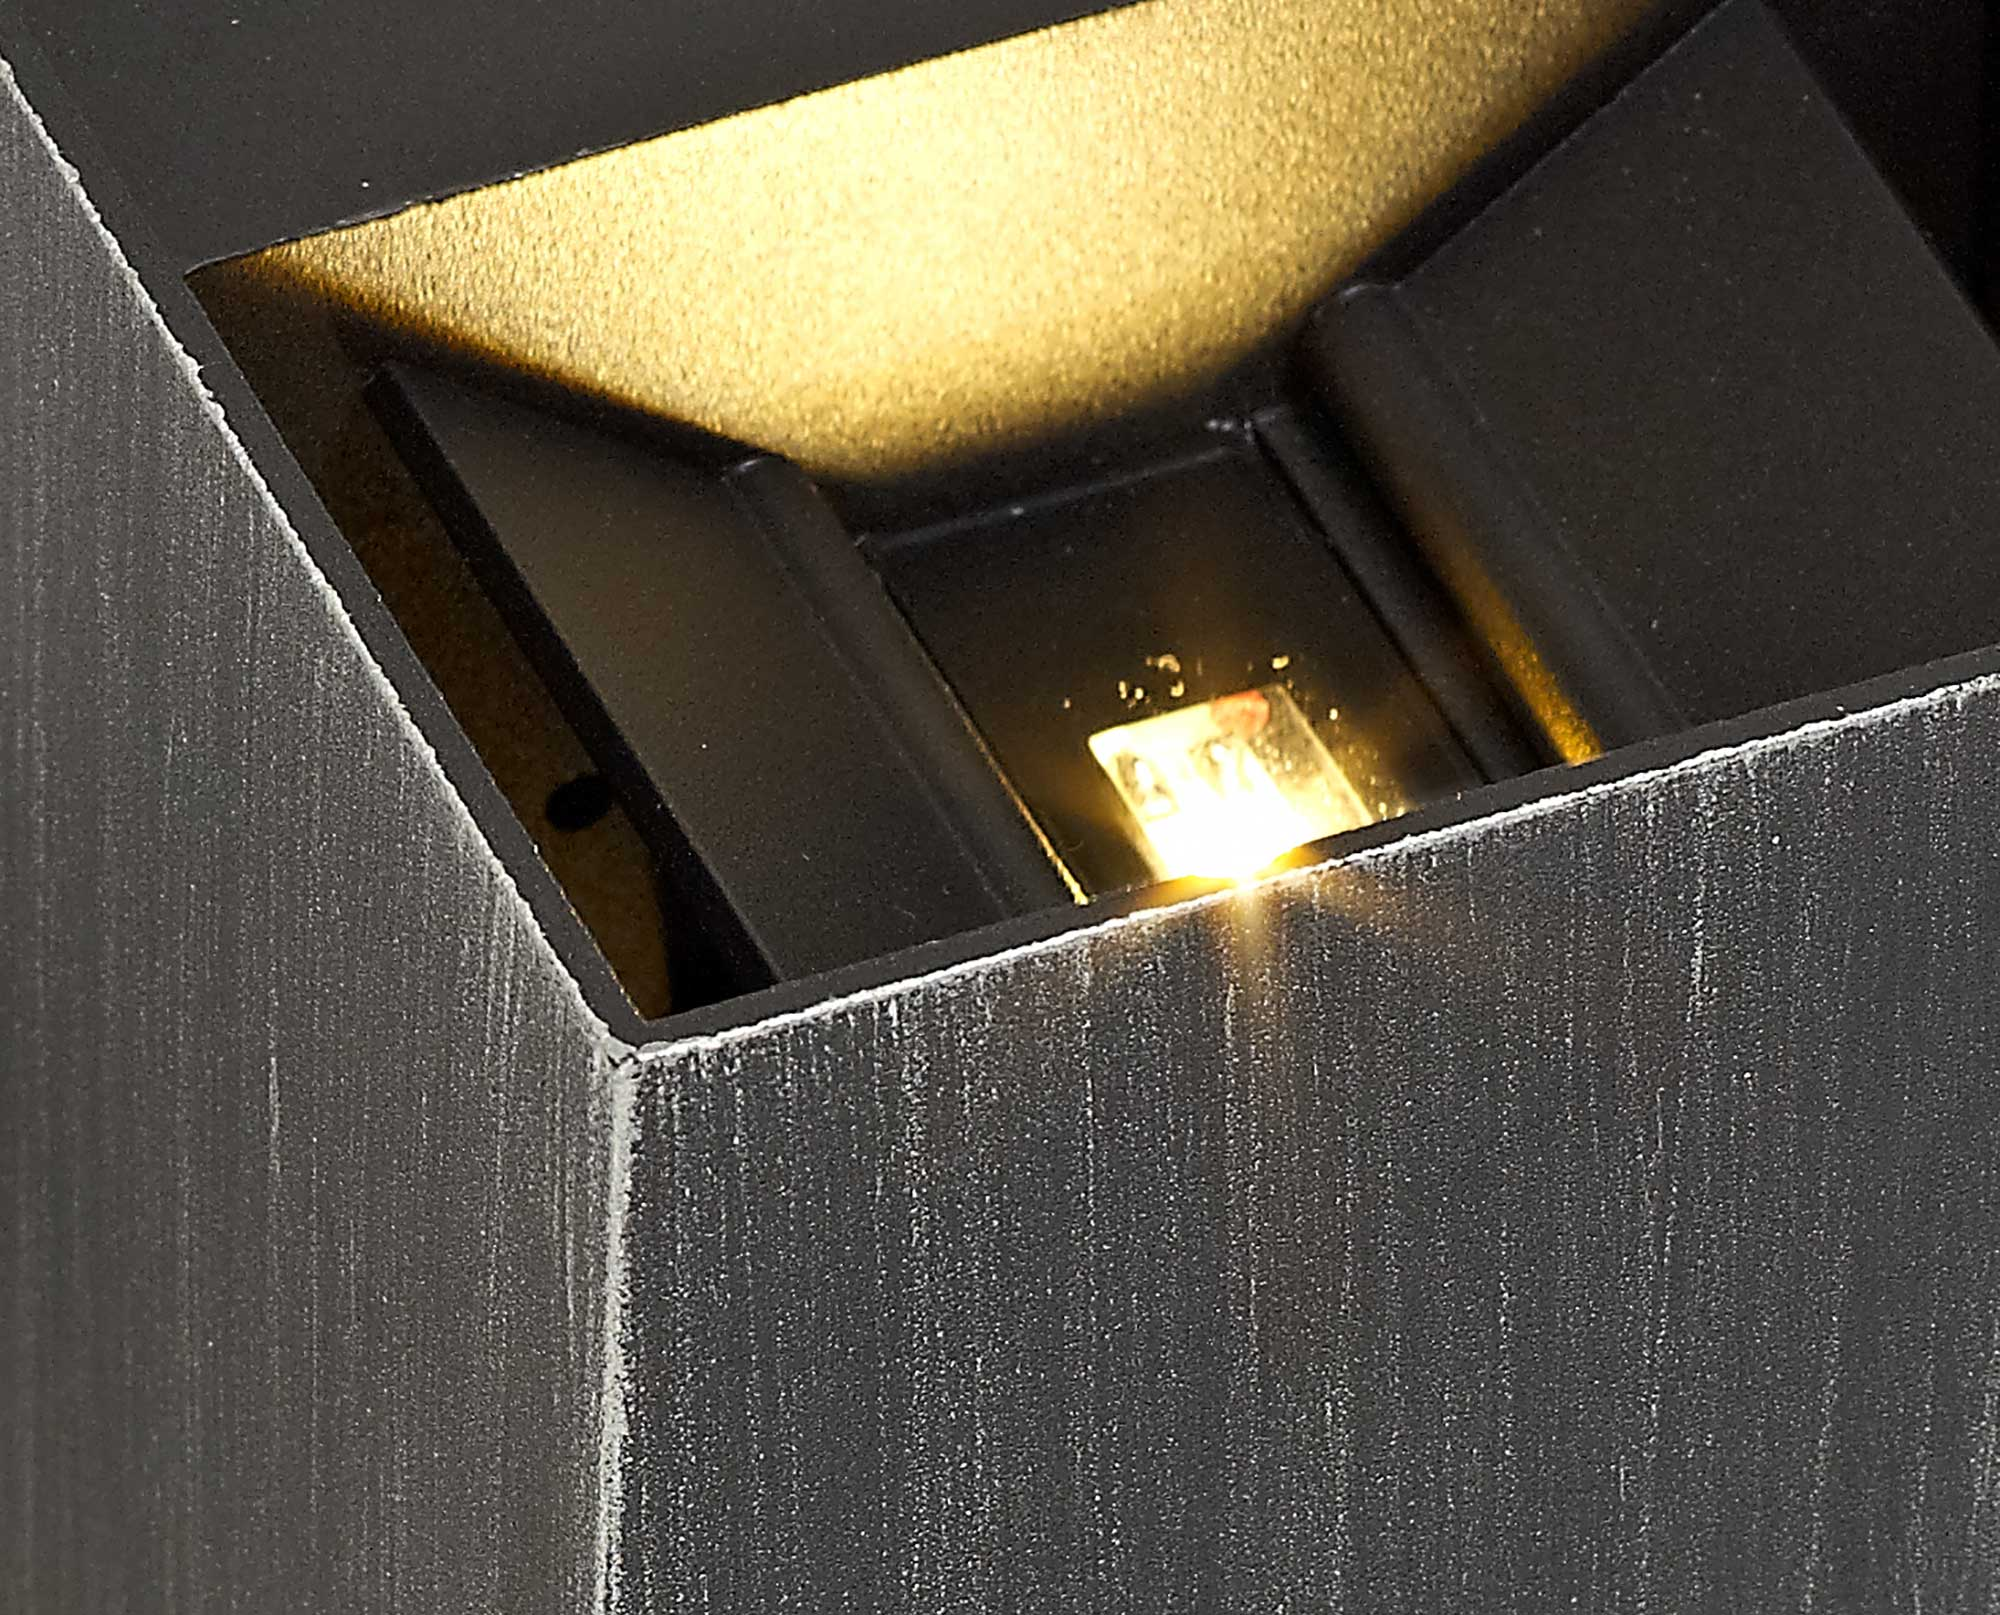 Up & Downward Lighting Wall Lamp, 2 x 3W LED, 3000K, 400lm, IP54, Black/Silver, 3yrs Warranty